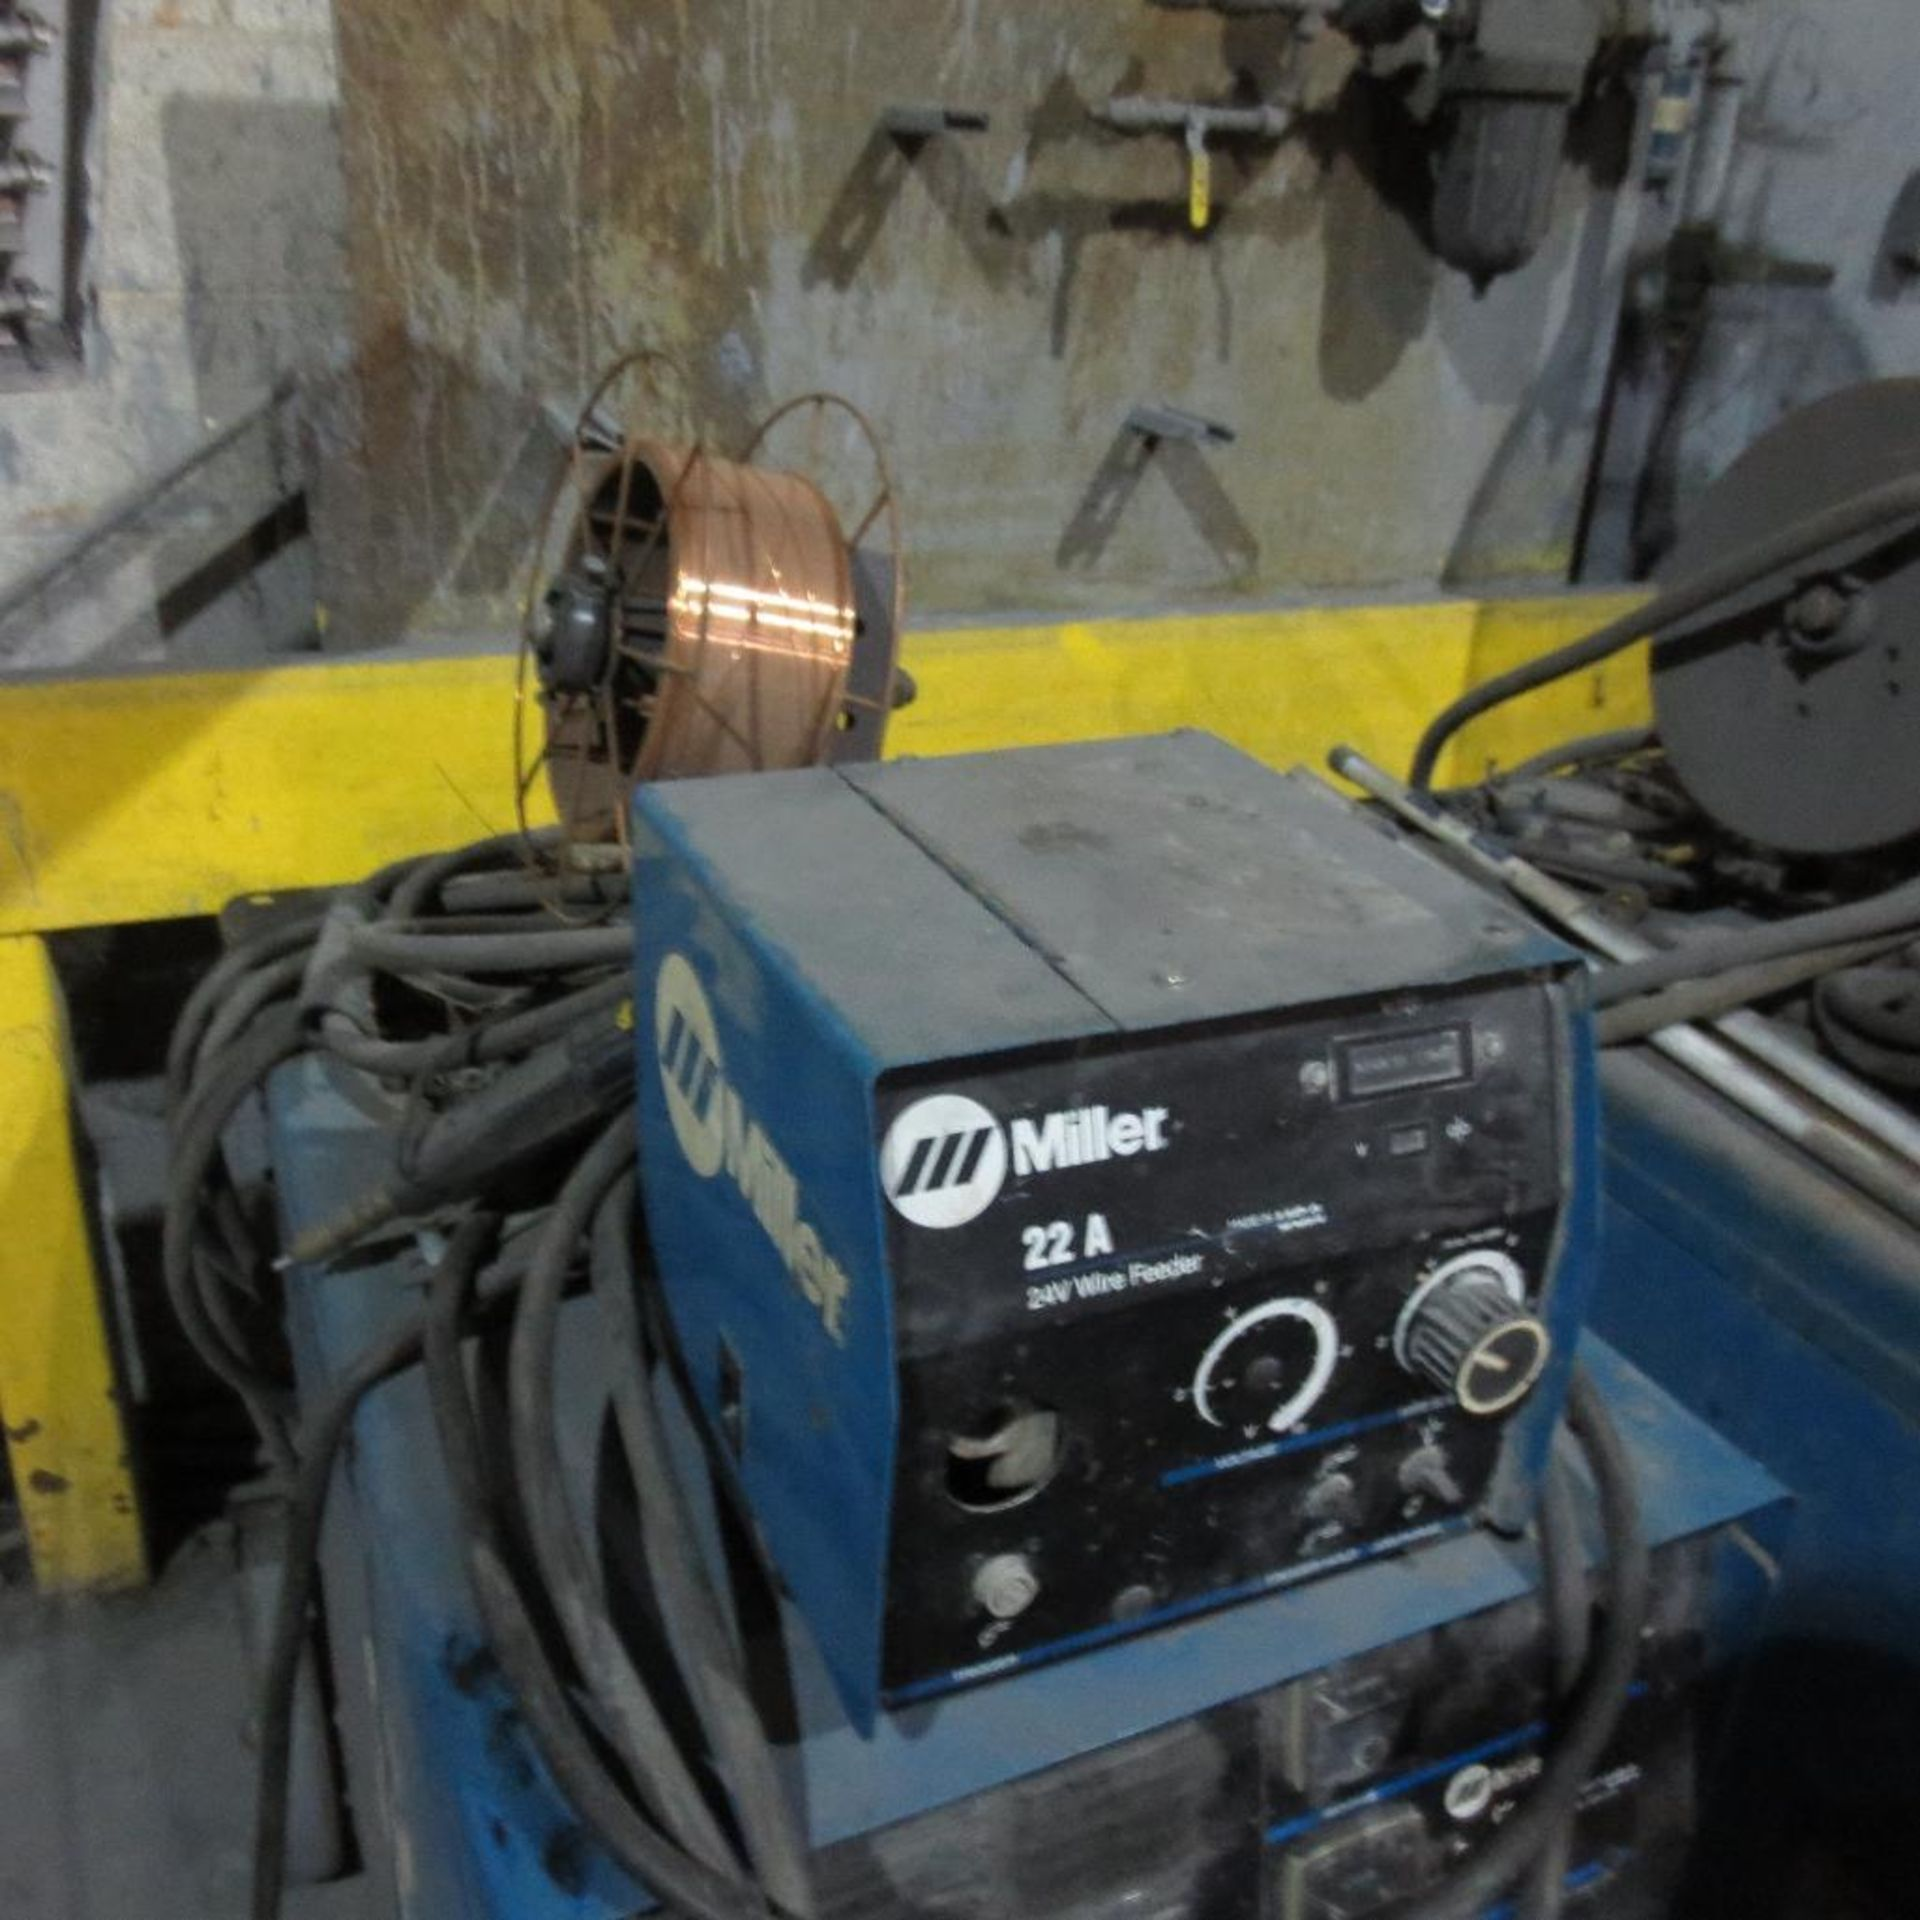 Lot 2 - Miller Model CP-302 Welder with A-22 Wire Feed